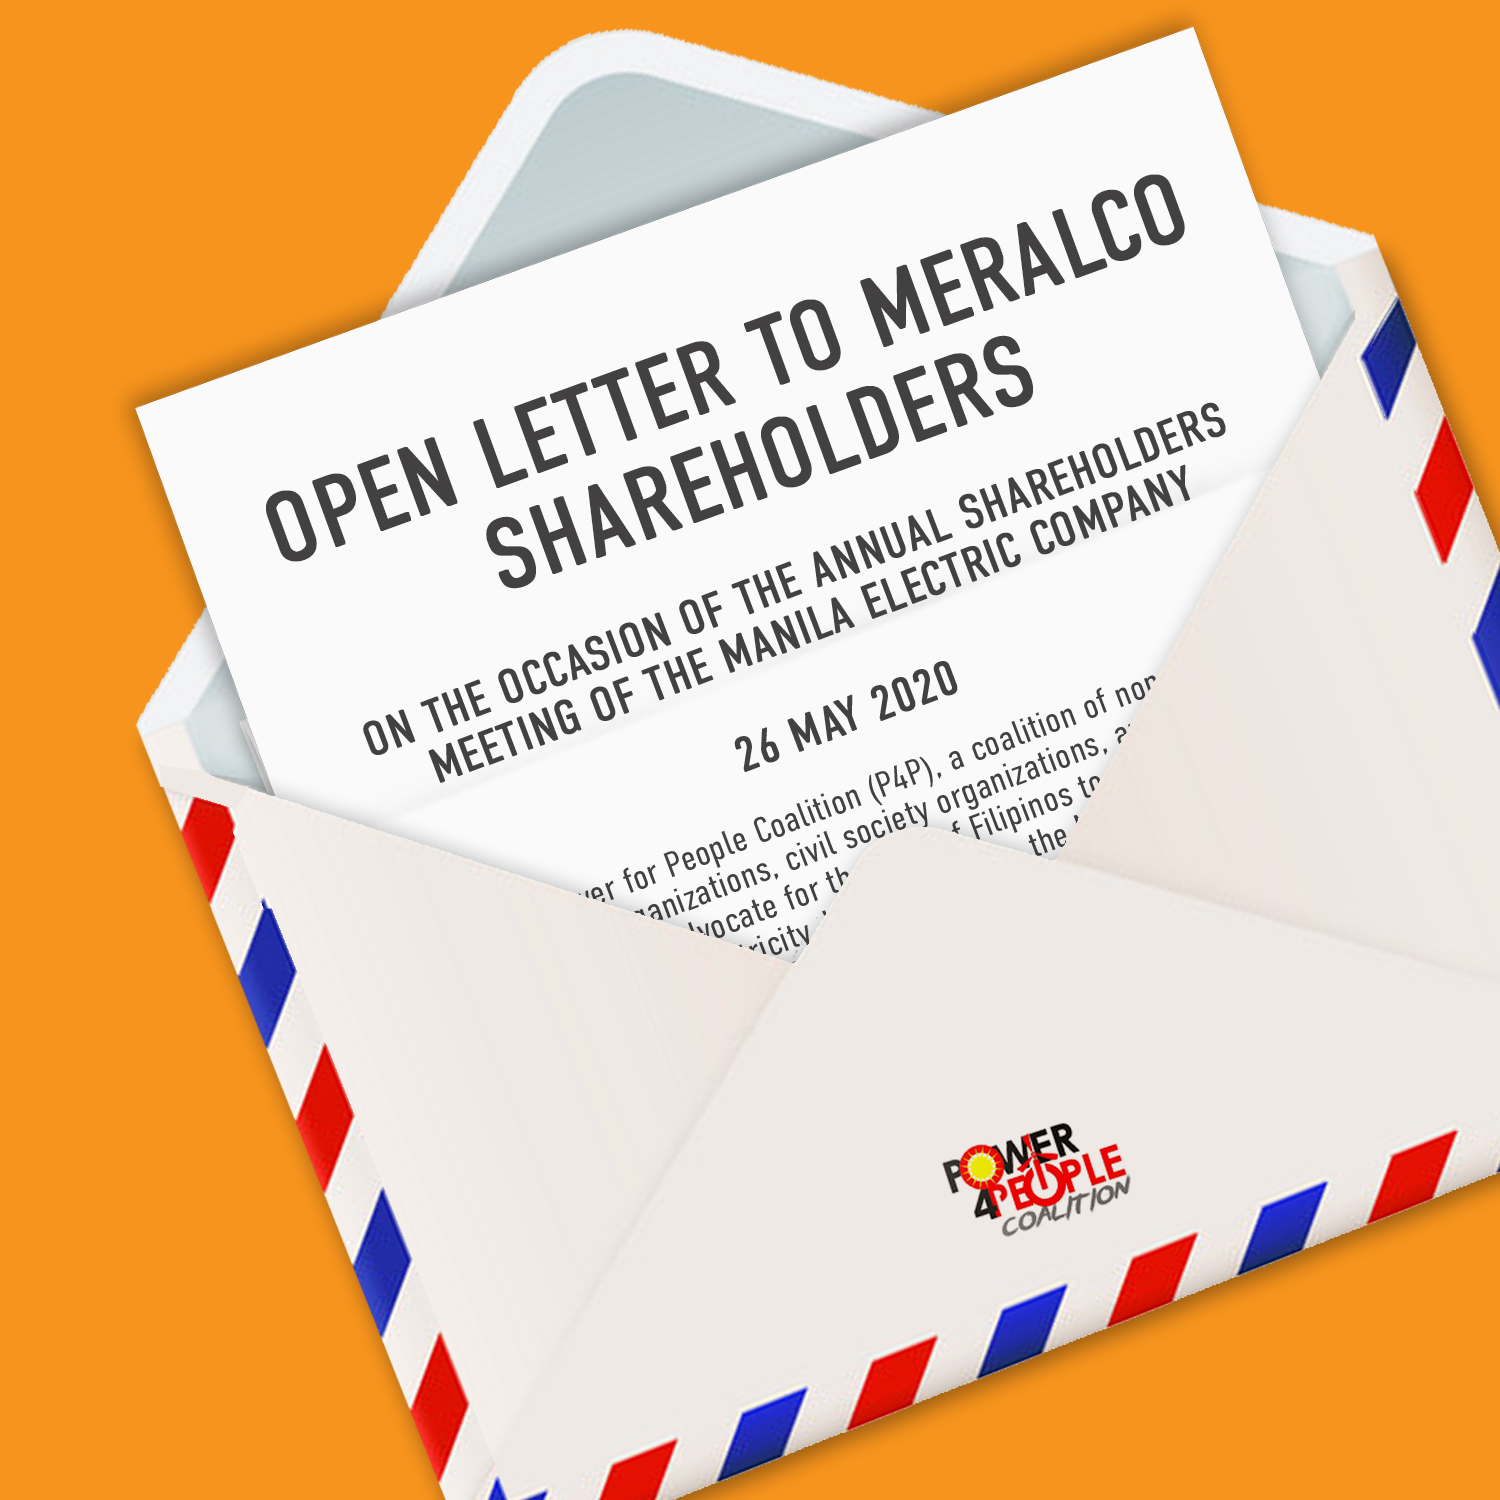 An Open Letter to all MERALCO Shareholders